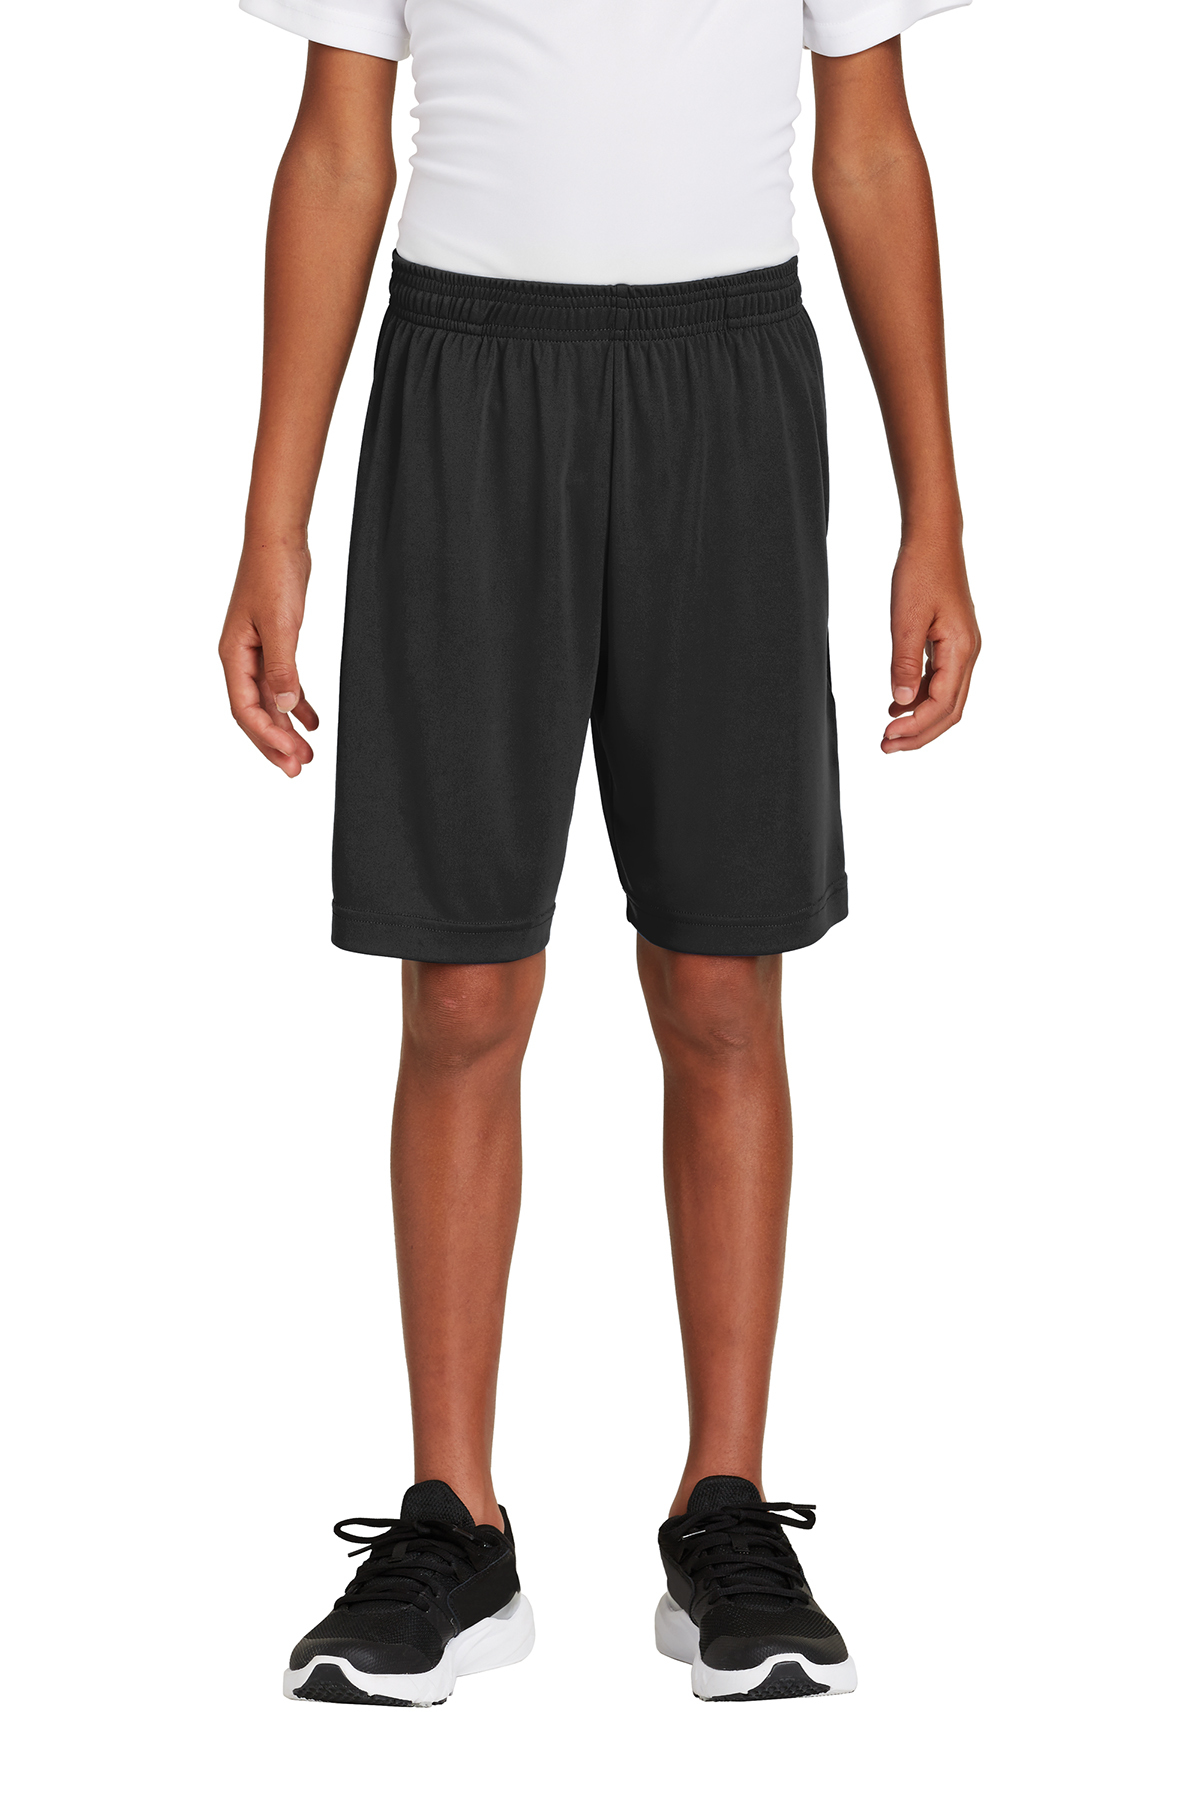 Sport-Tek Youth Elastic Waistband 9 Inches Inseam  Polyester Short YST355